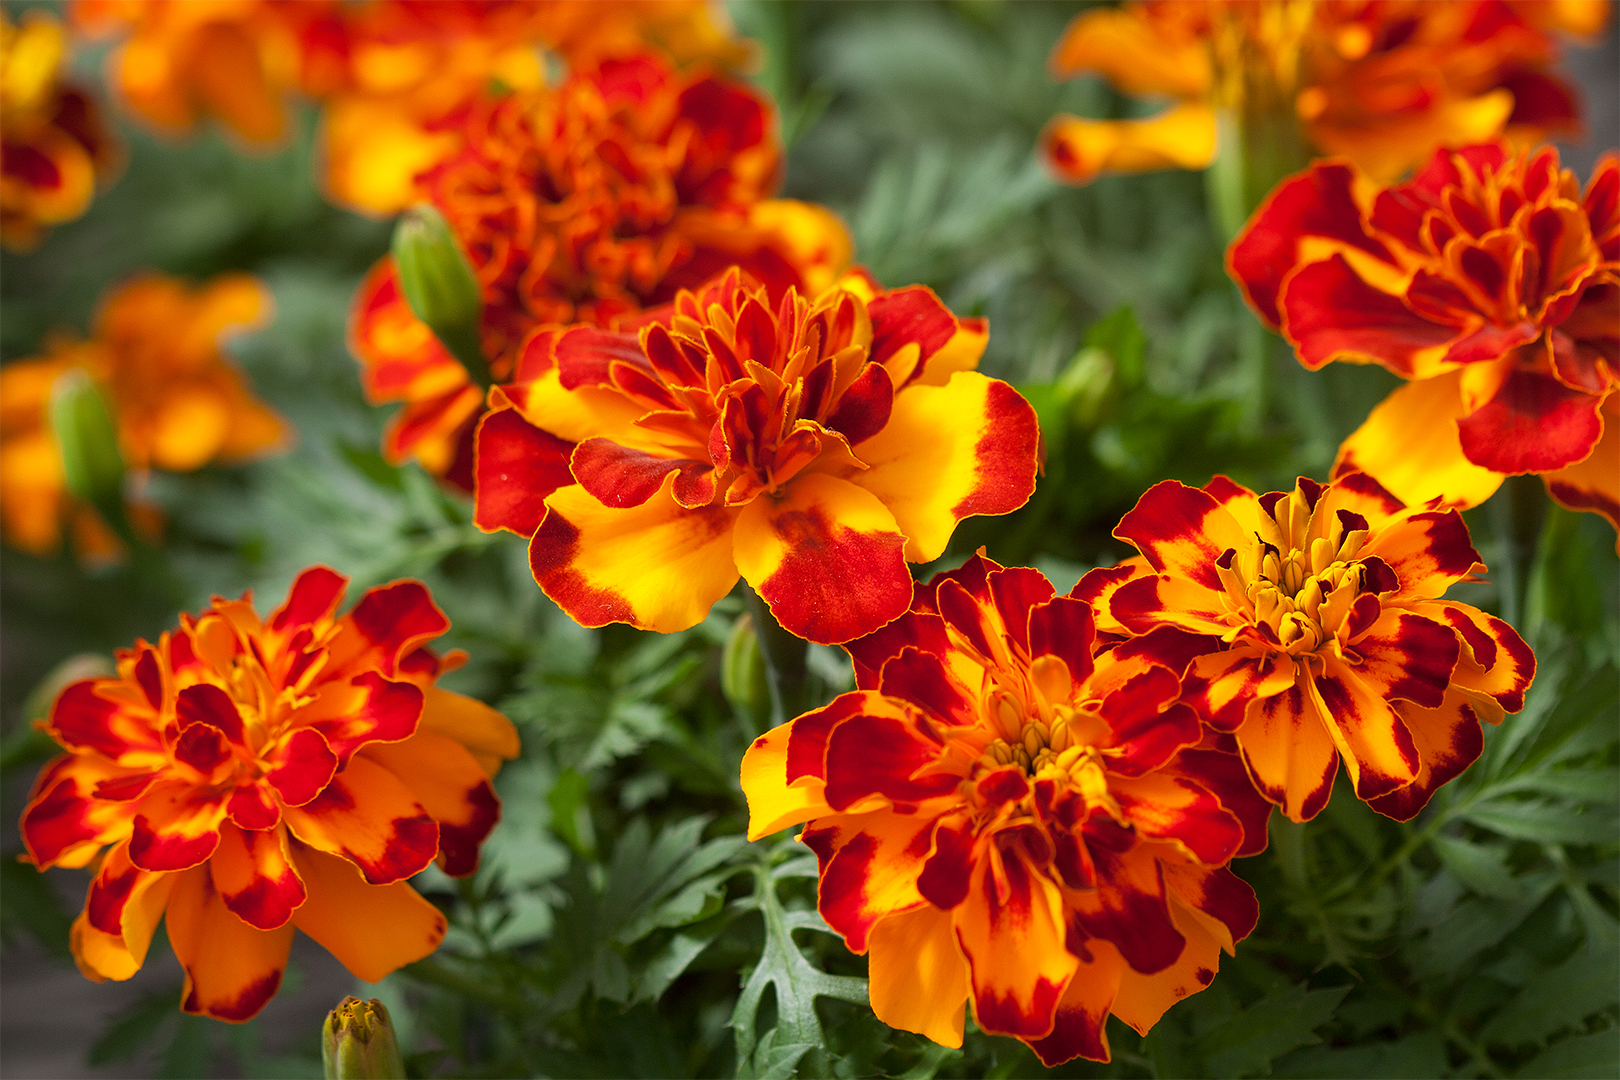 red orange flowers bright colorful